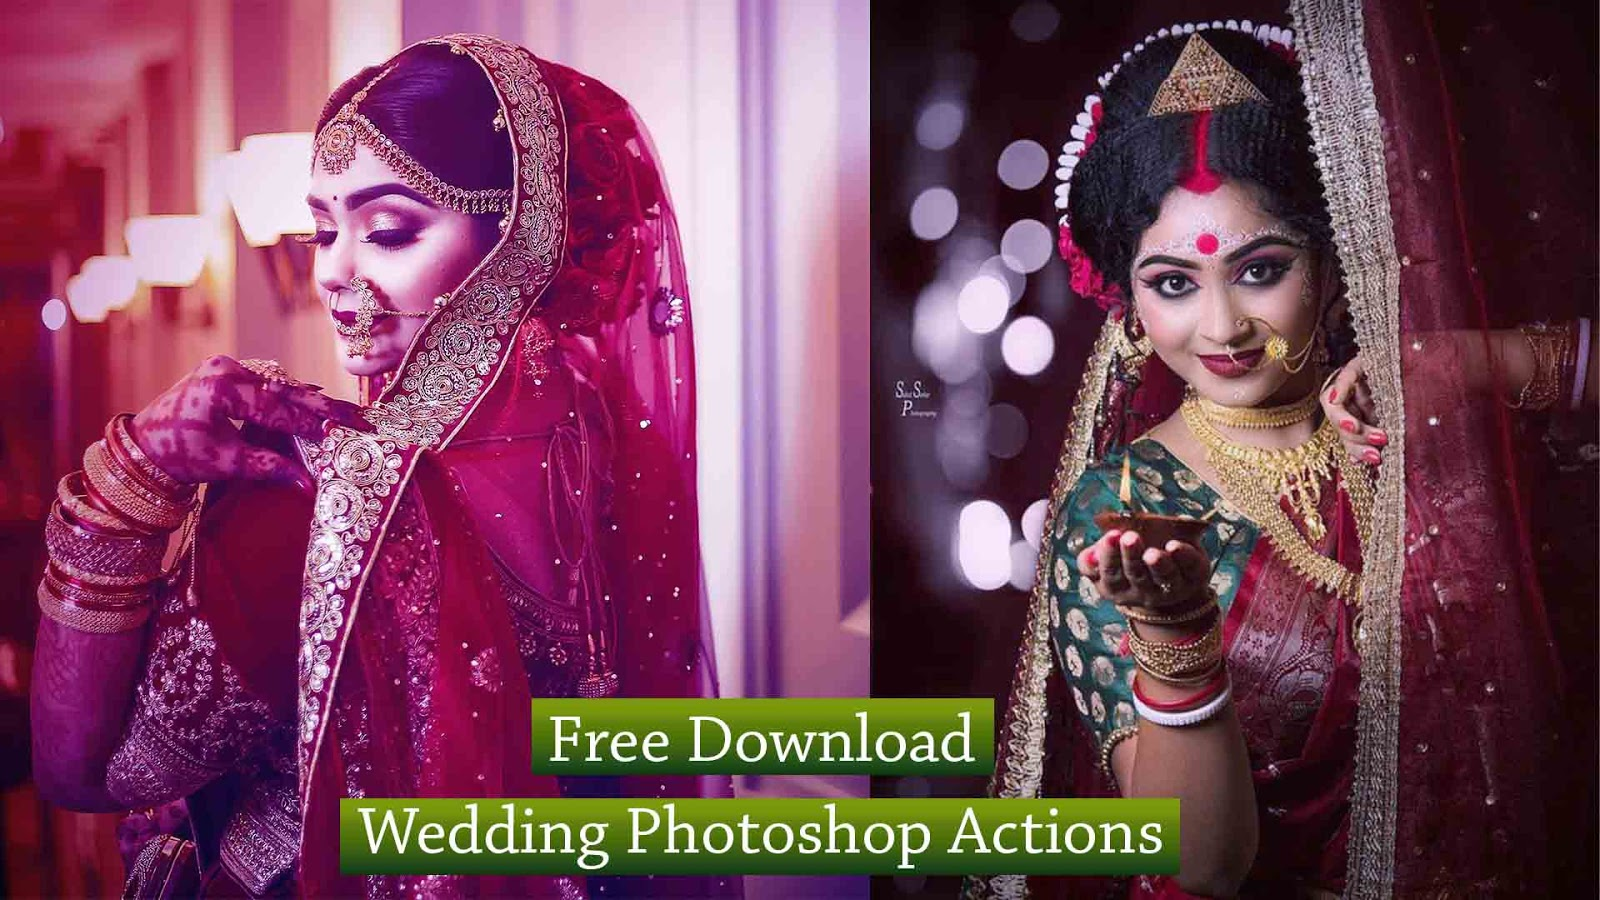 Free Download Wedding Photoshop Actions Free Professional